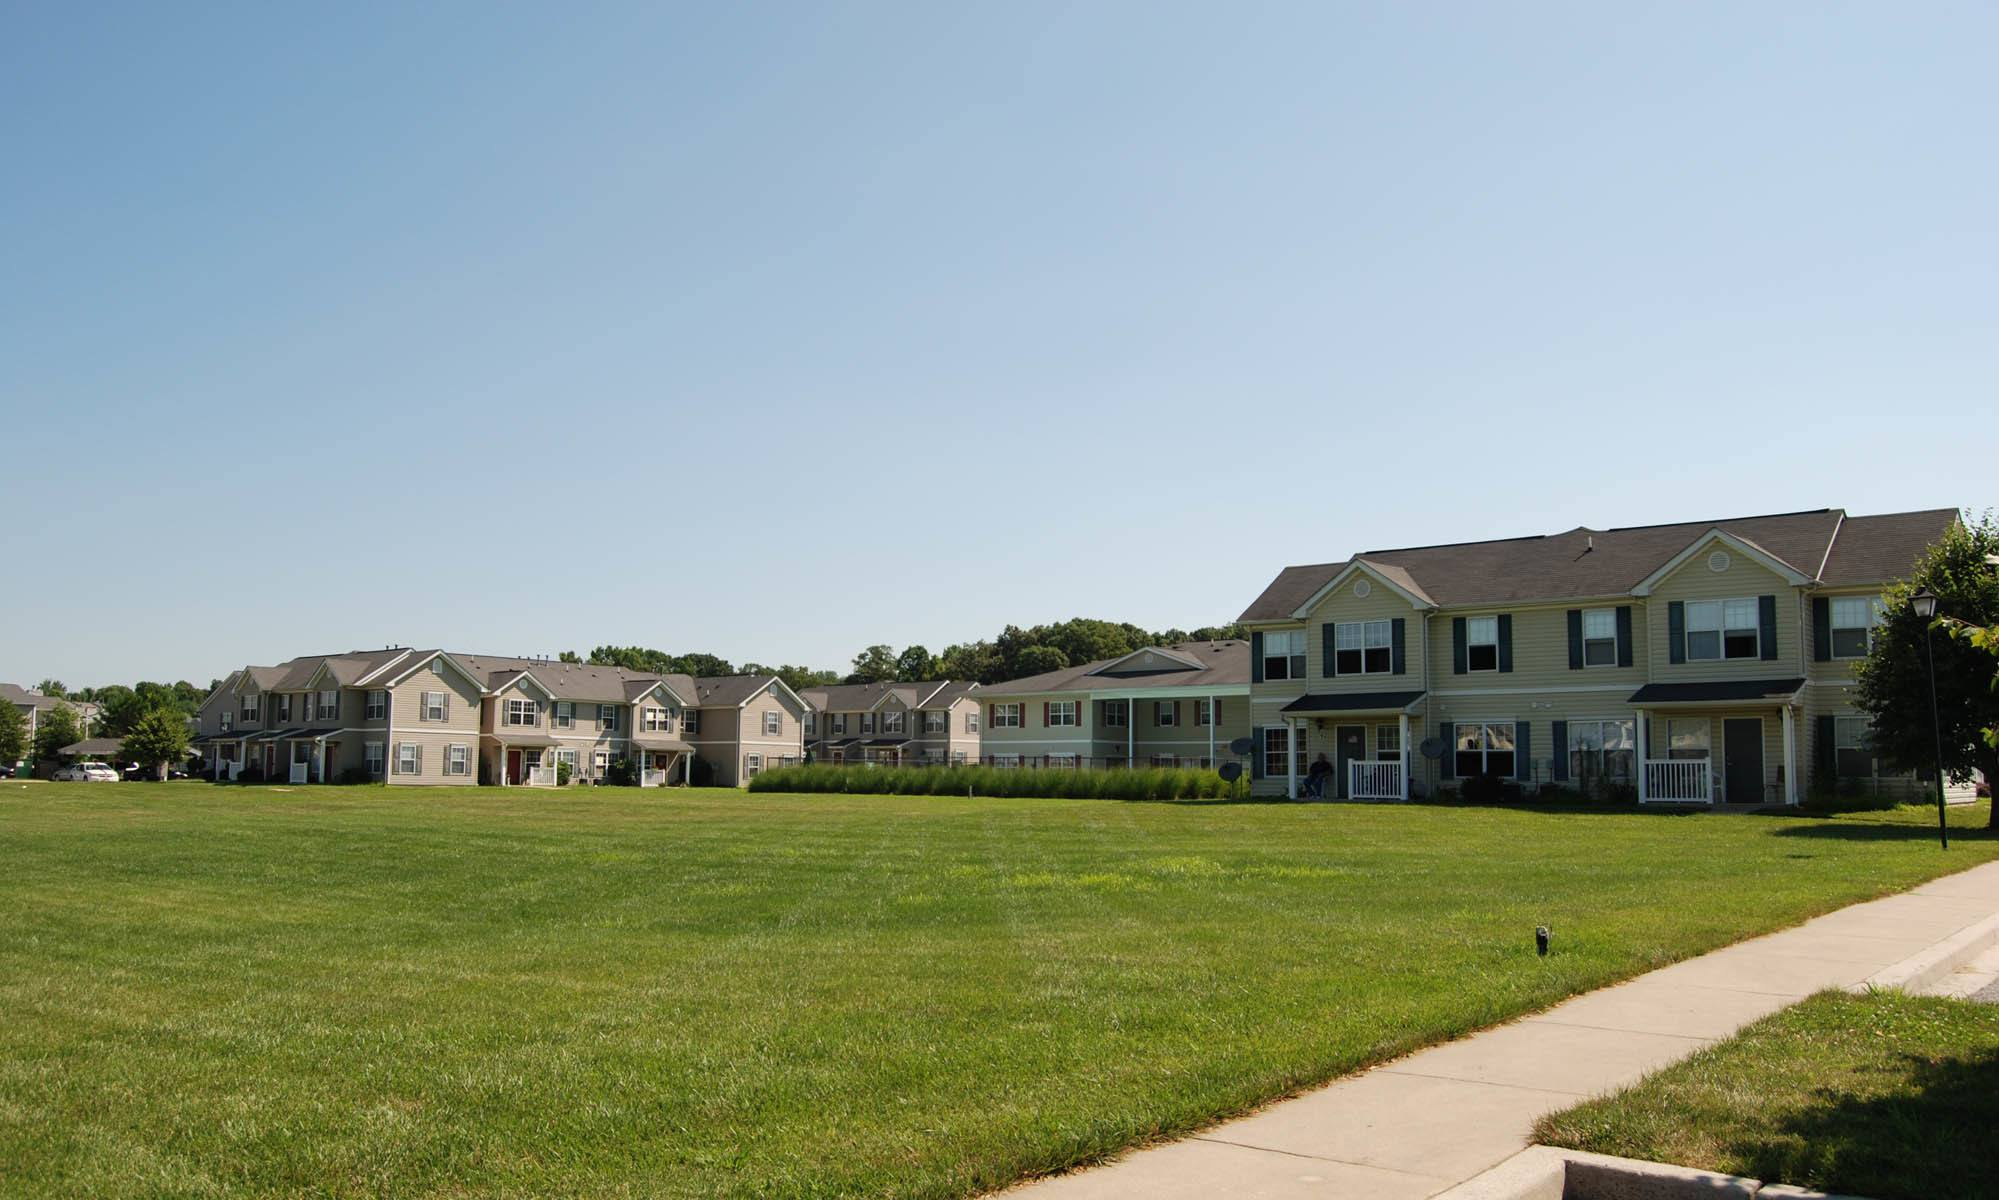 Glen Creek Apartments has very spacious grassy areas